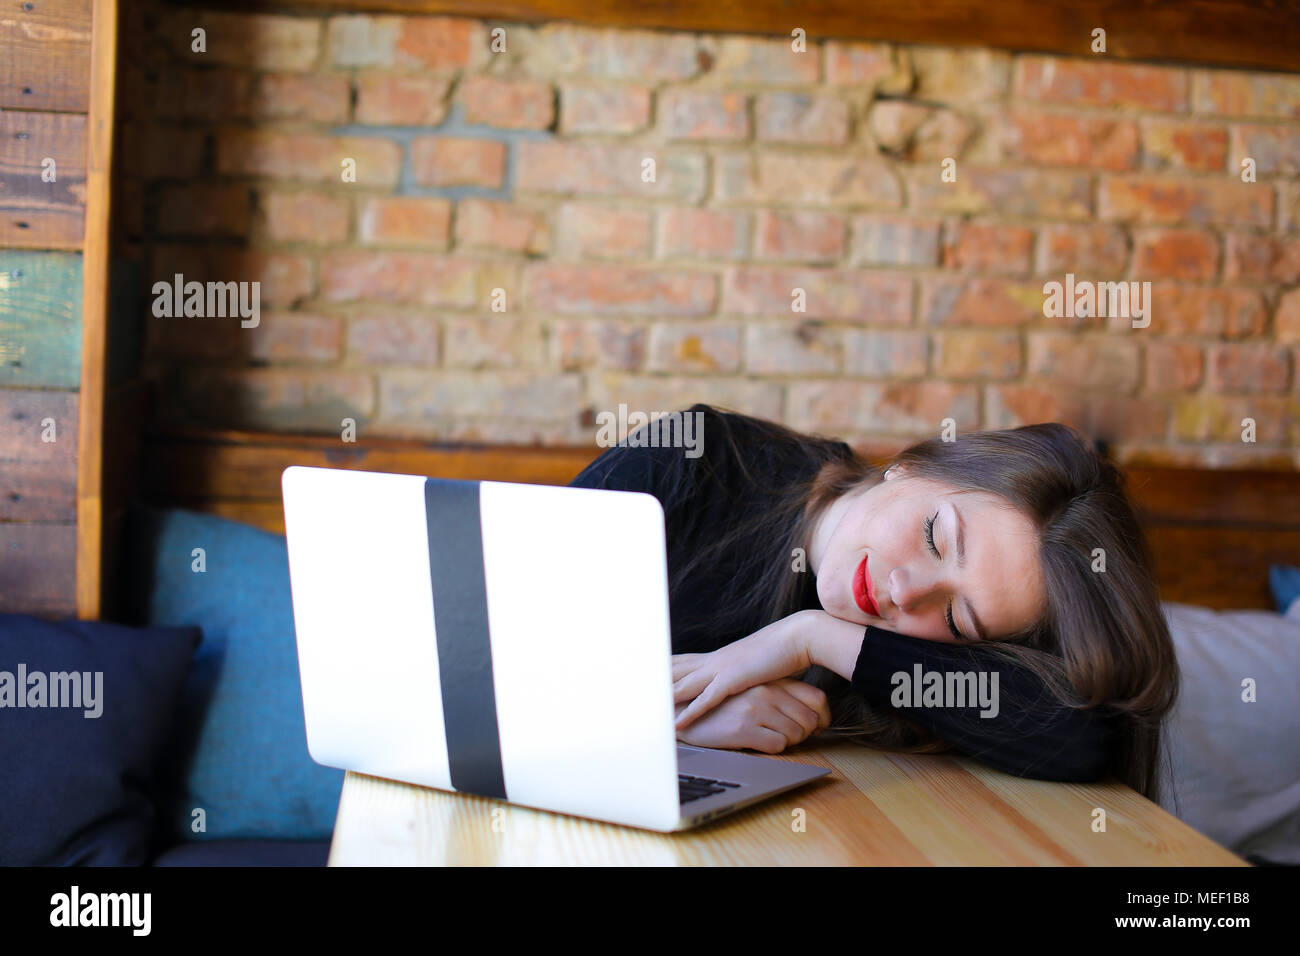 Tired student sleeping and sitting near modern laptop at cafe on sofa. - Stock Image